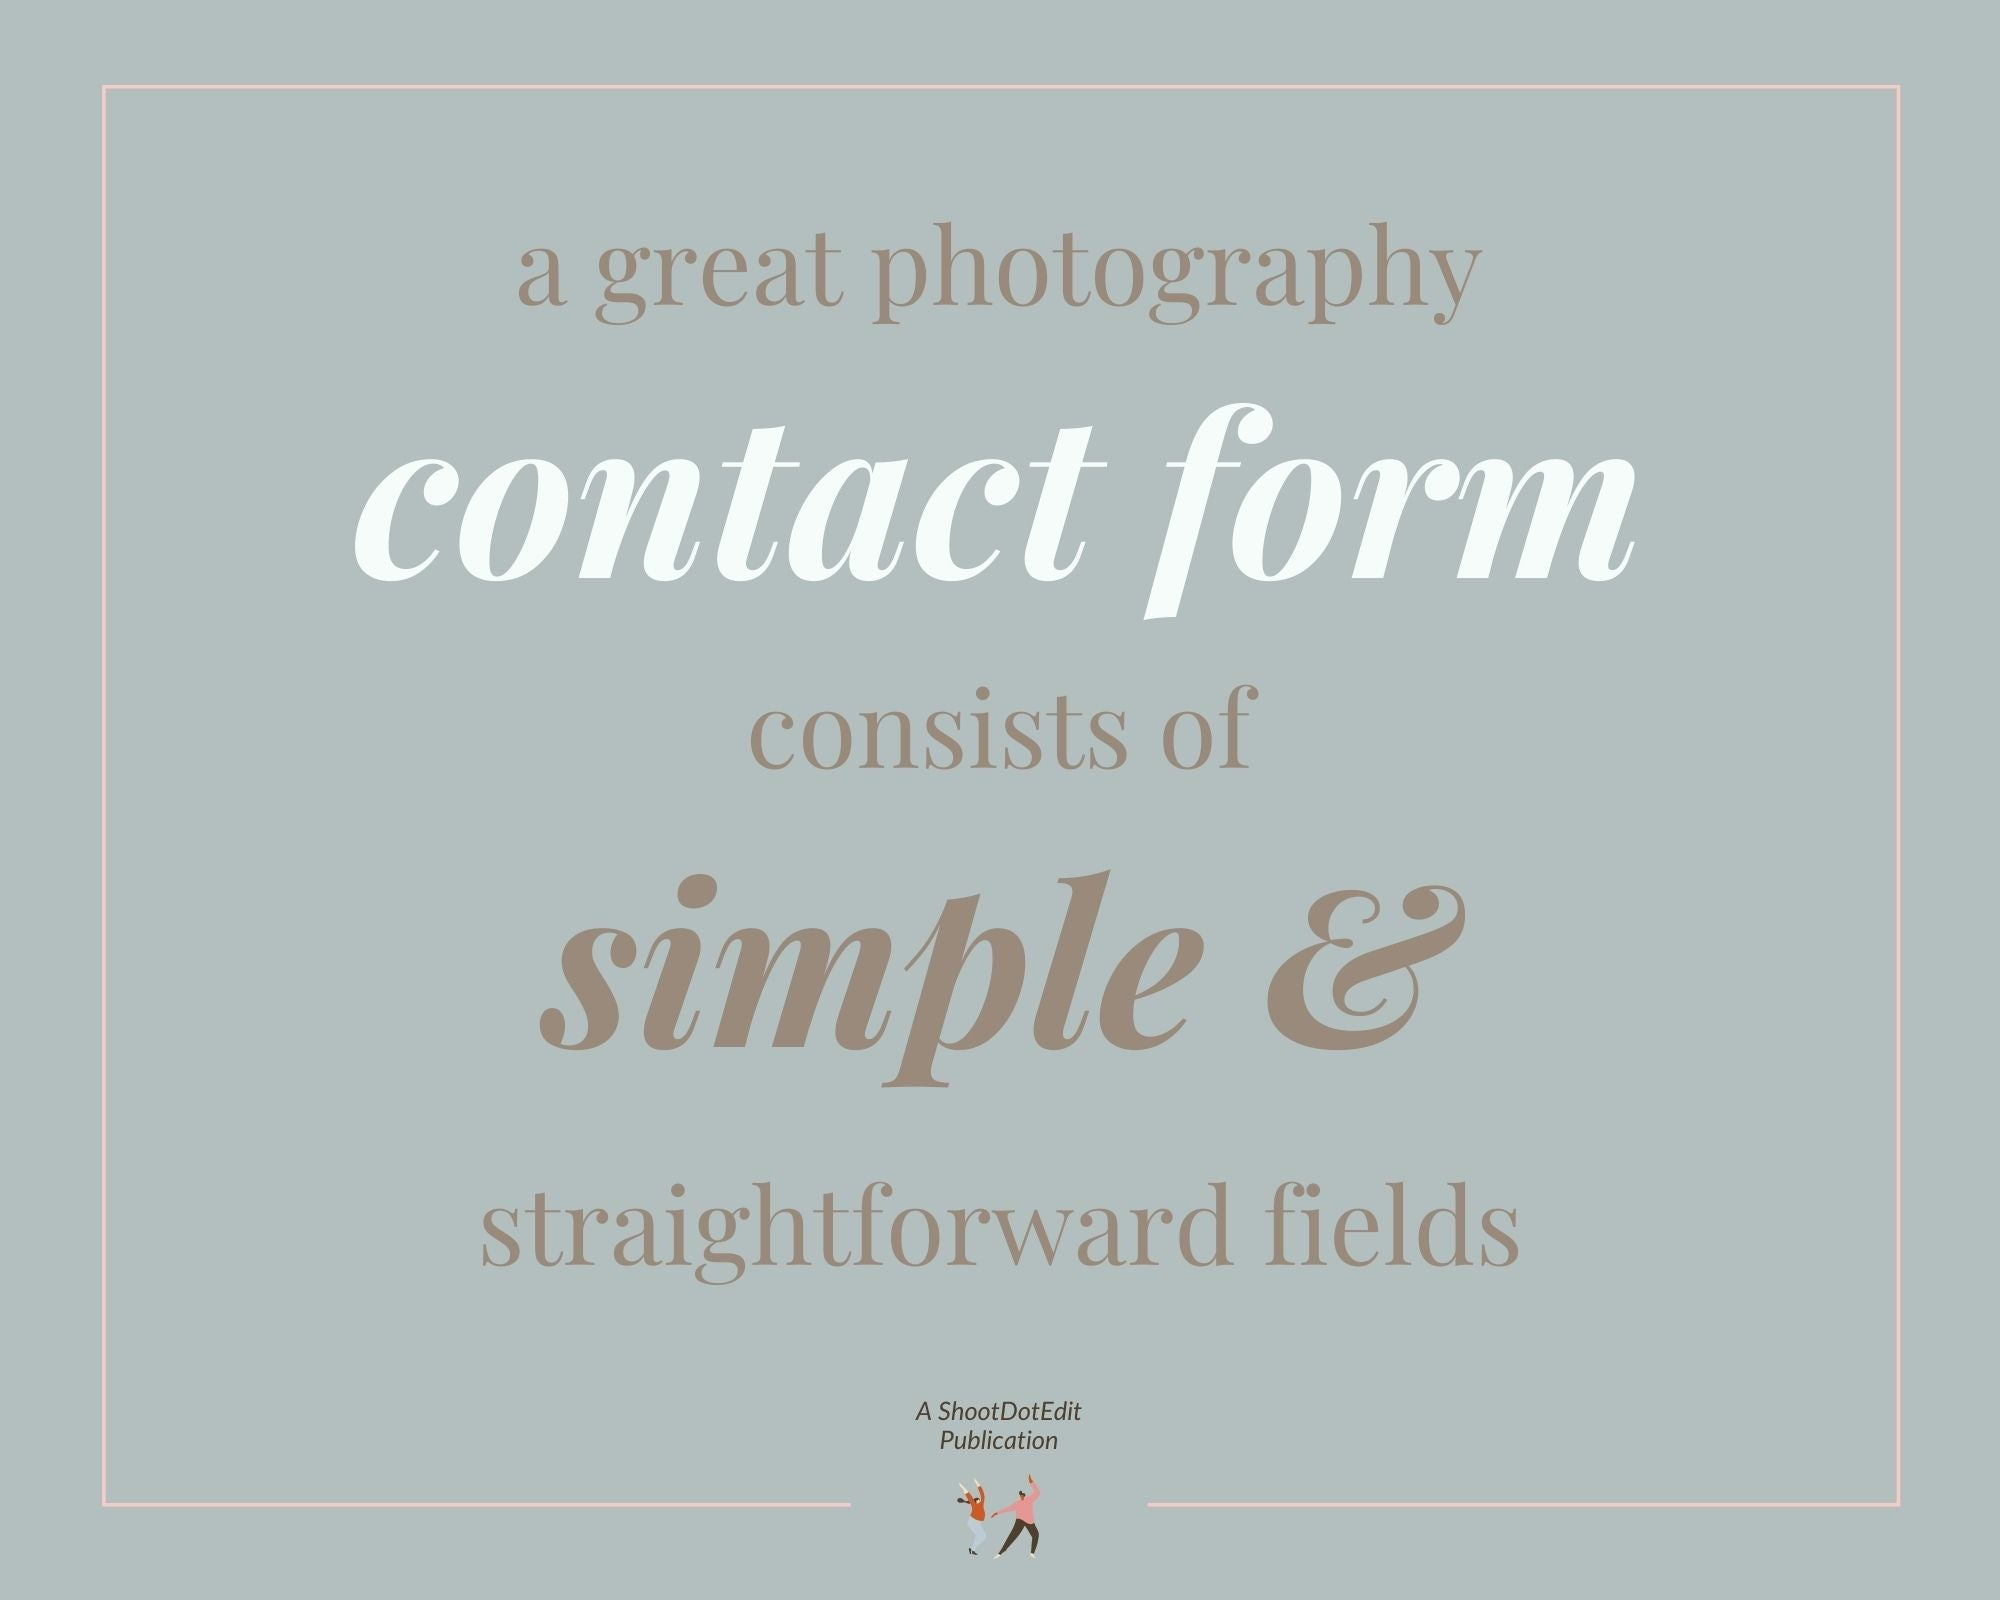 Infographic stating a great photography contact form consists of simple and straightforward fields